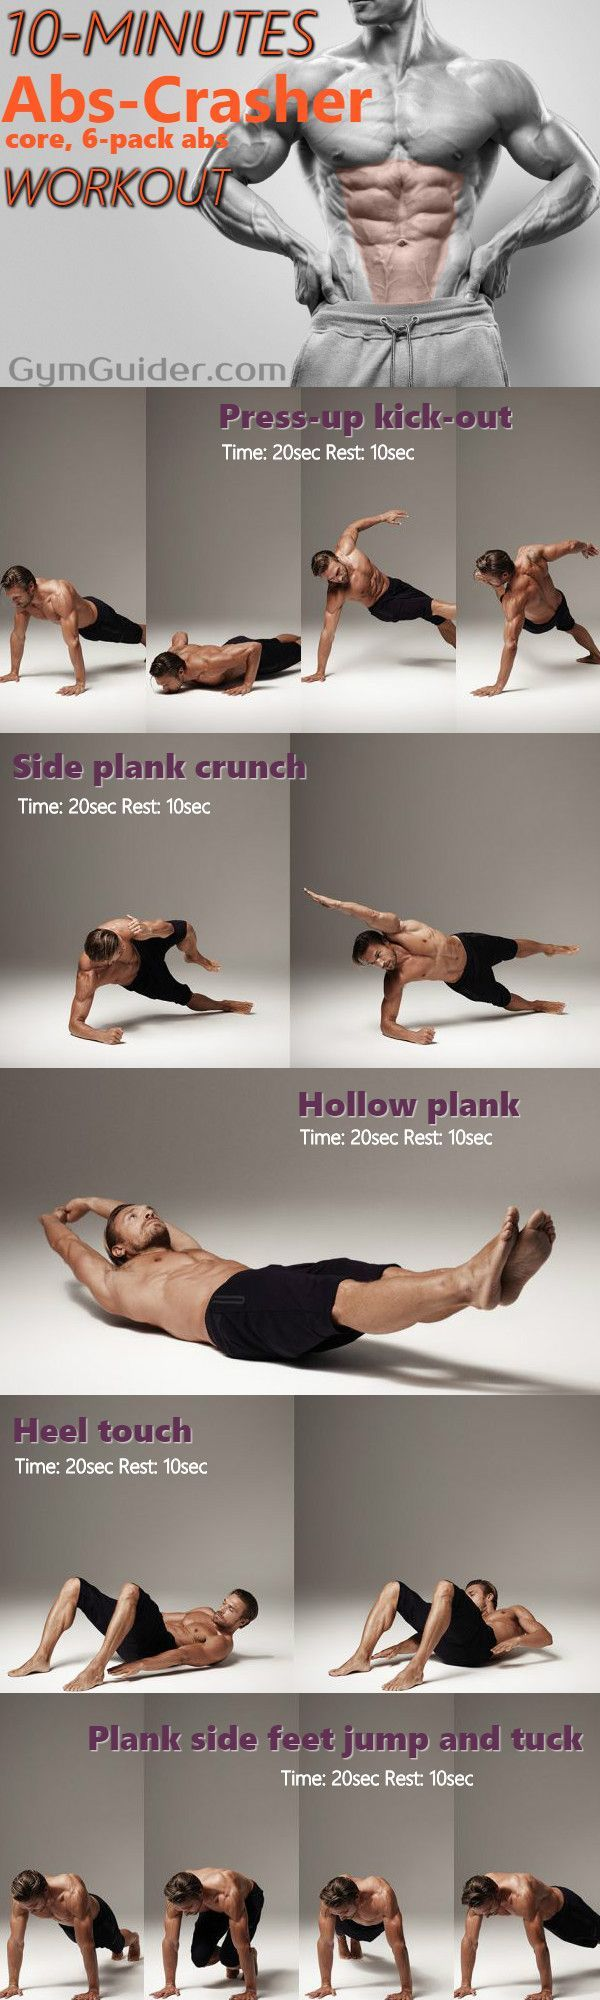 10 minute ab workout can be enough to get six pack abs or flatter stomach! Abs Workout - At Home Ab